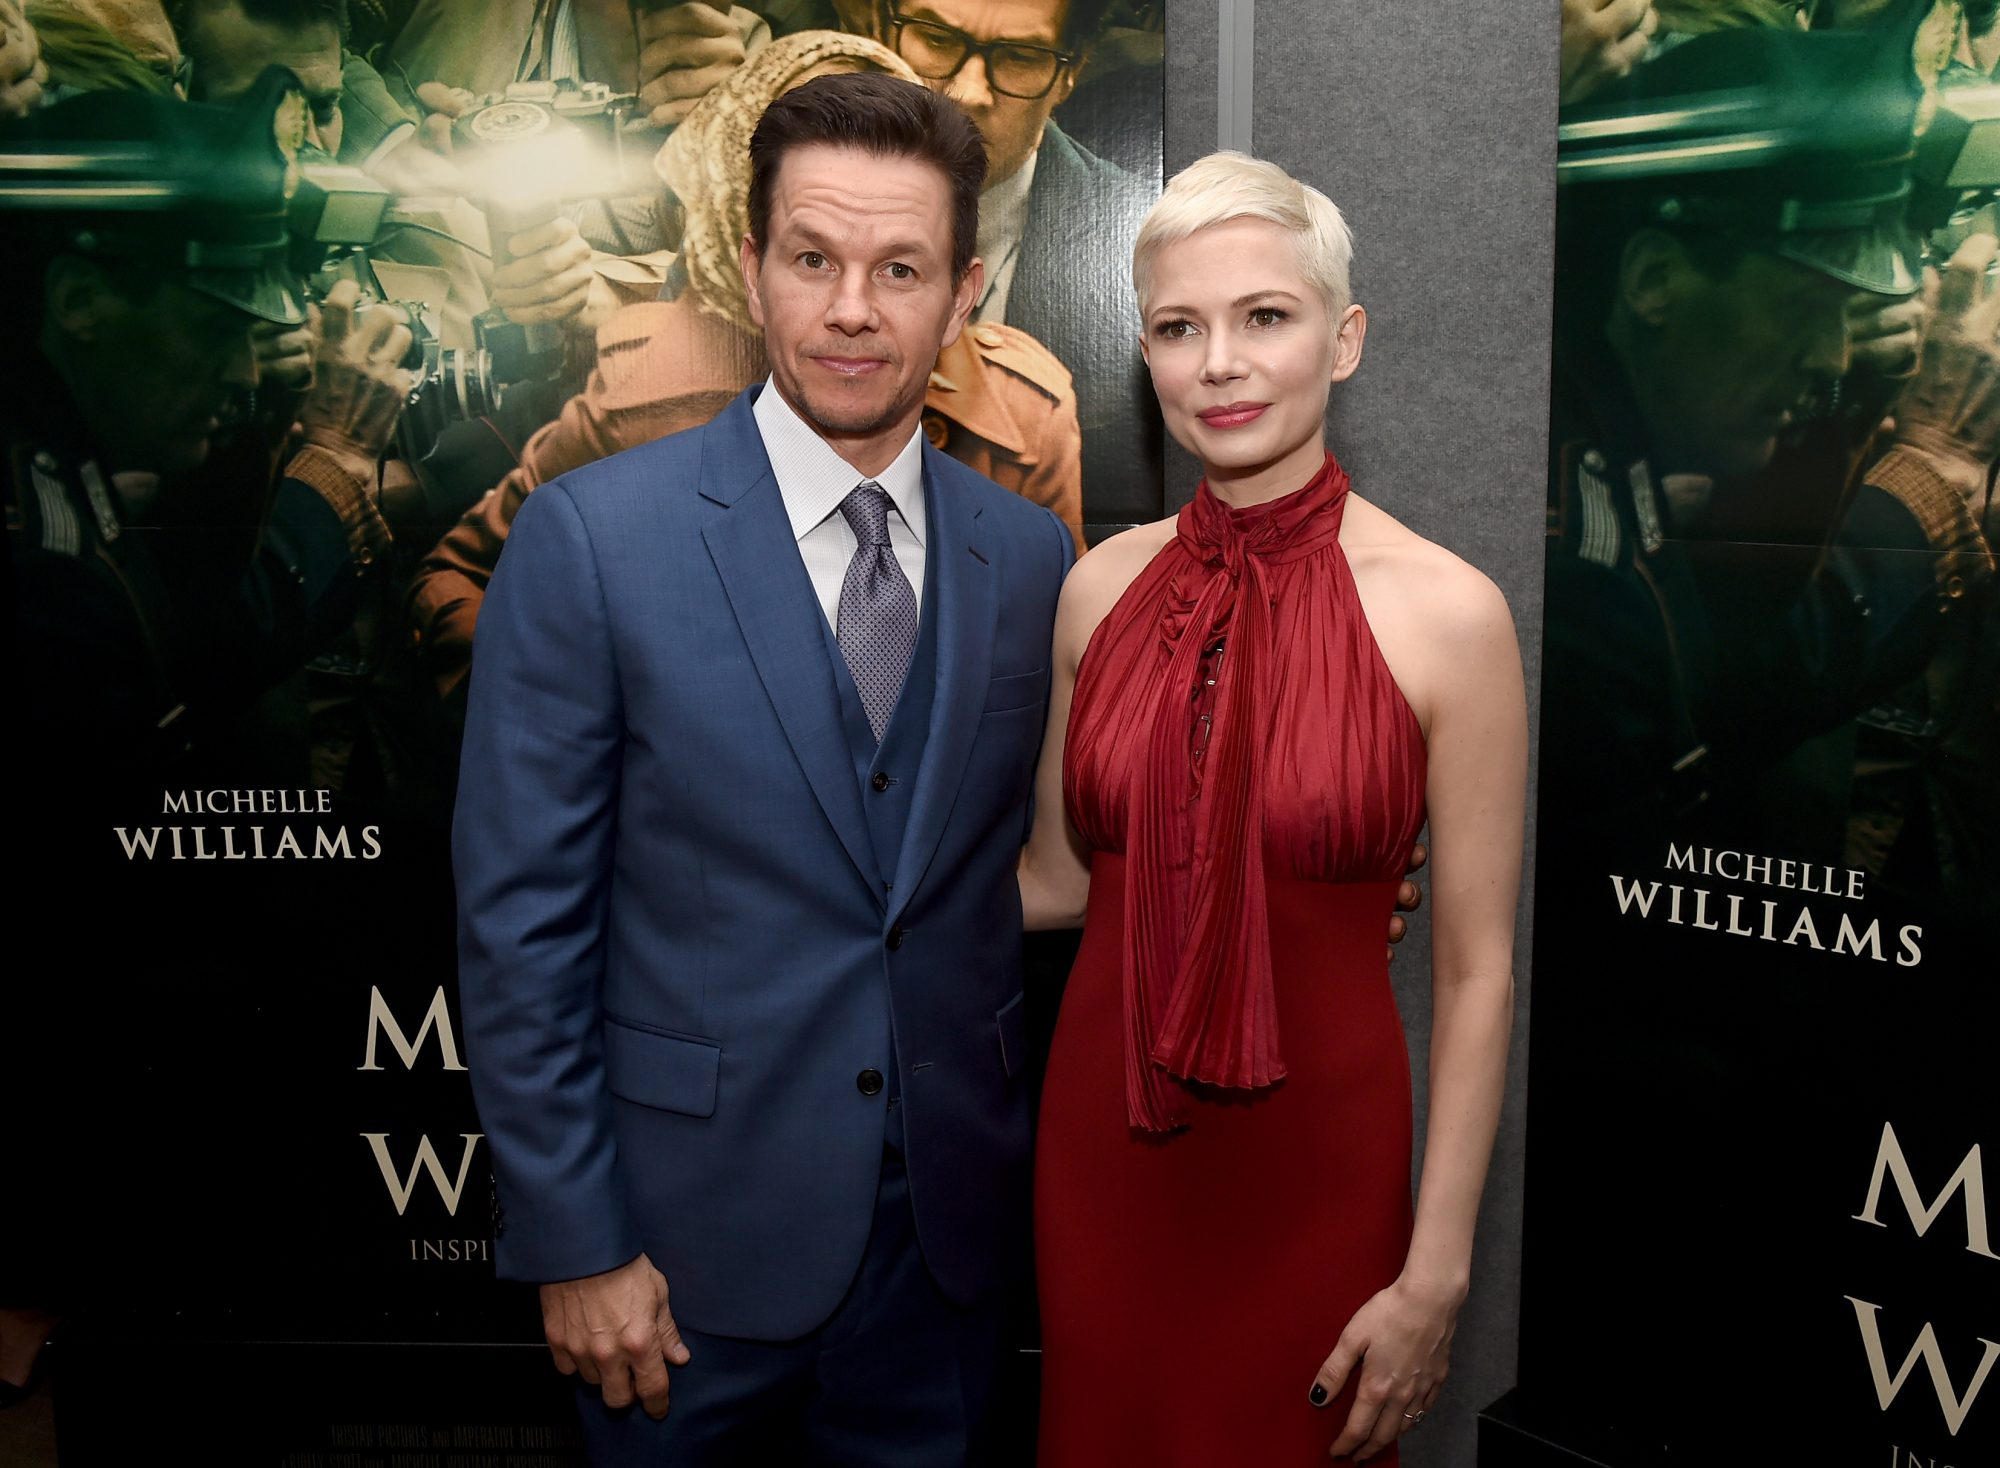 """Photo of Michelle Williams and Mark Wahlberg at the Premiere of """"All the Money in the World"""""""